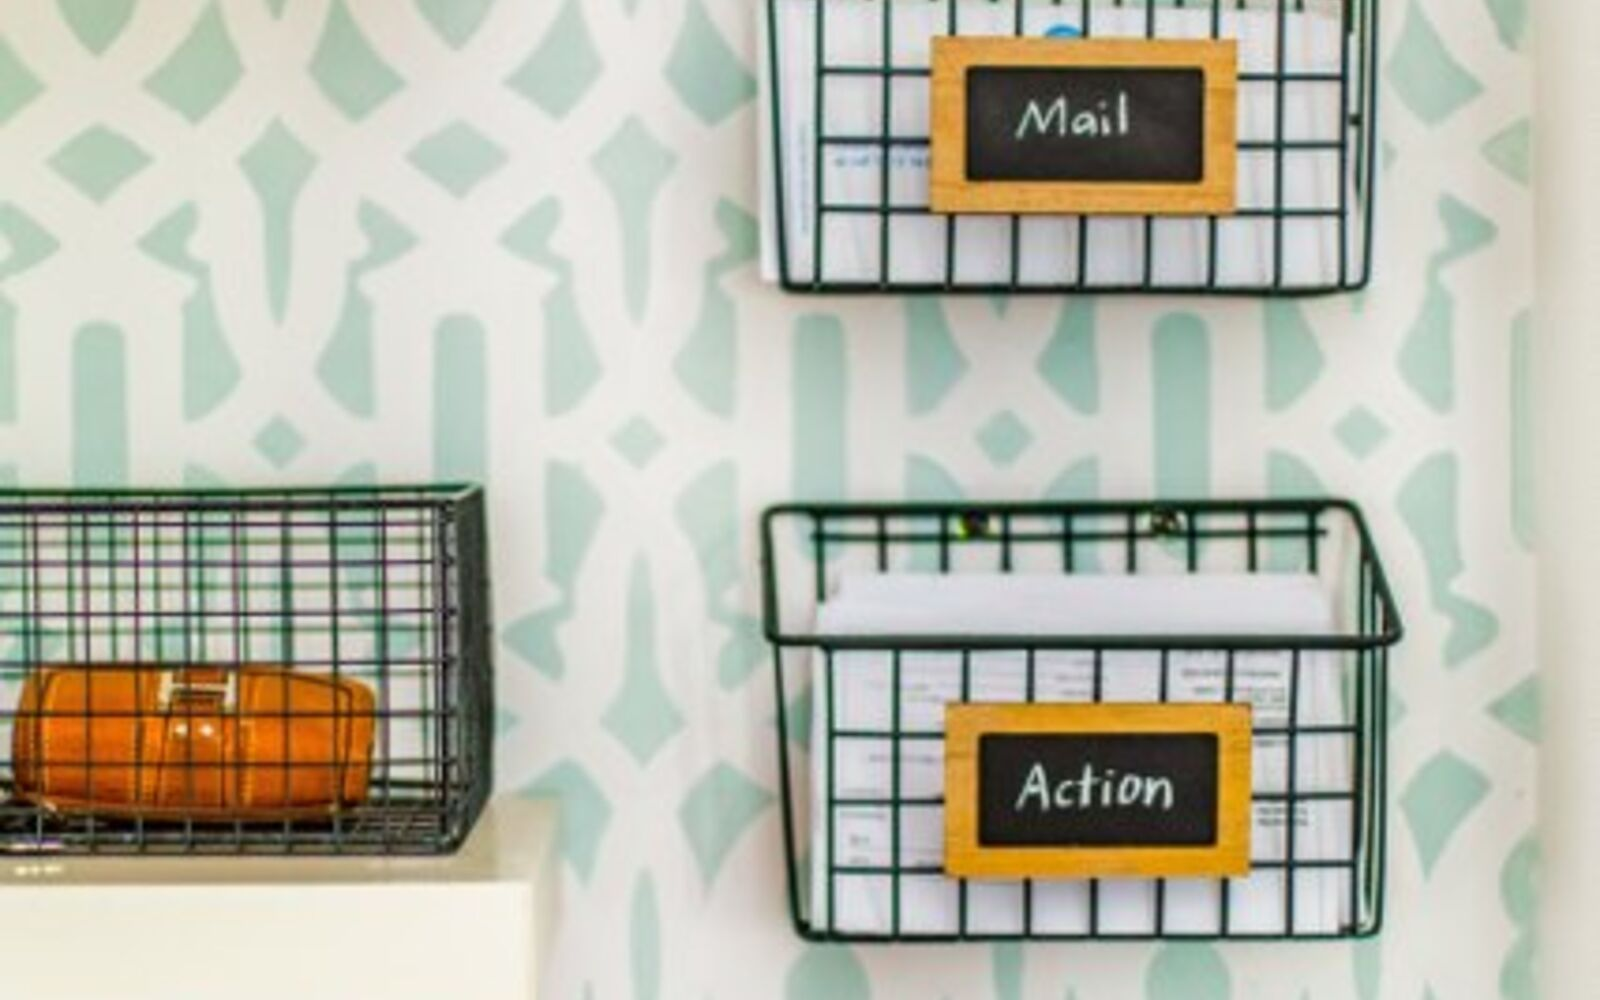 s 31 update ideas to make your kitchen look fabulous, Make a clever wire basket mail station